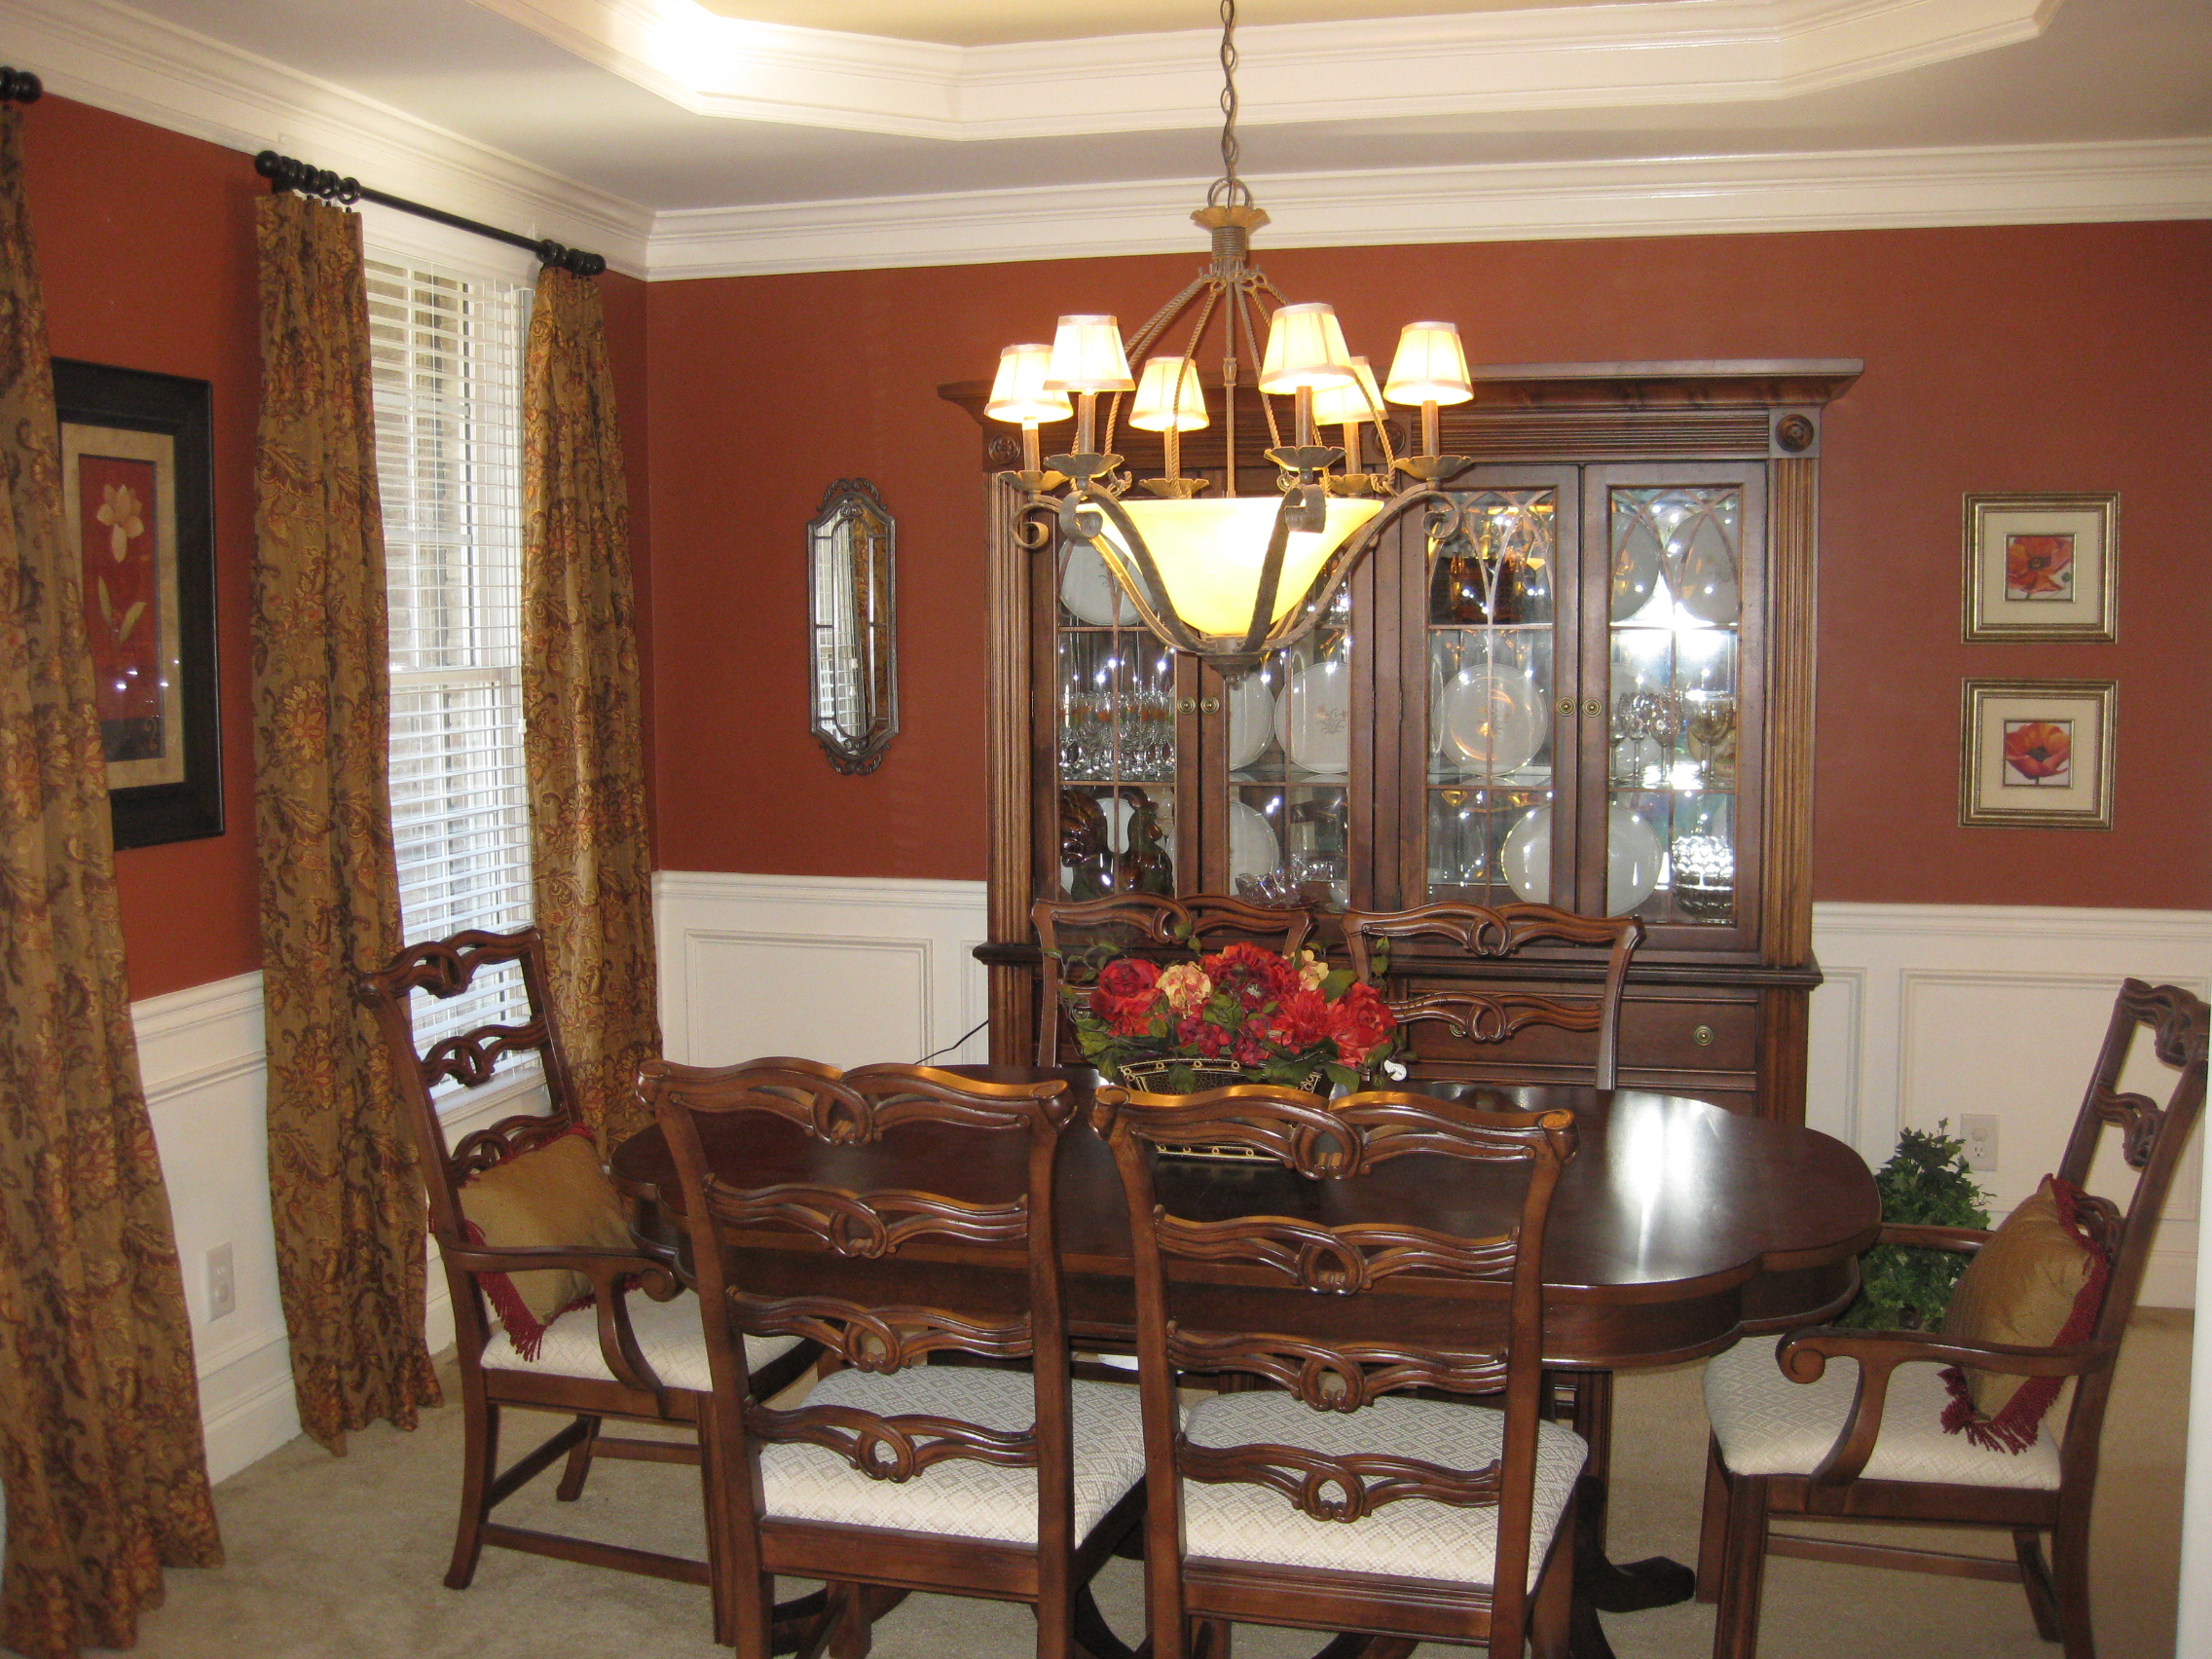 Traditional dining room decorating ideas 20 architecture for Decorating the dining room ideas